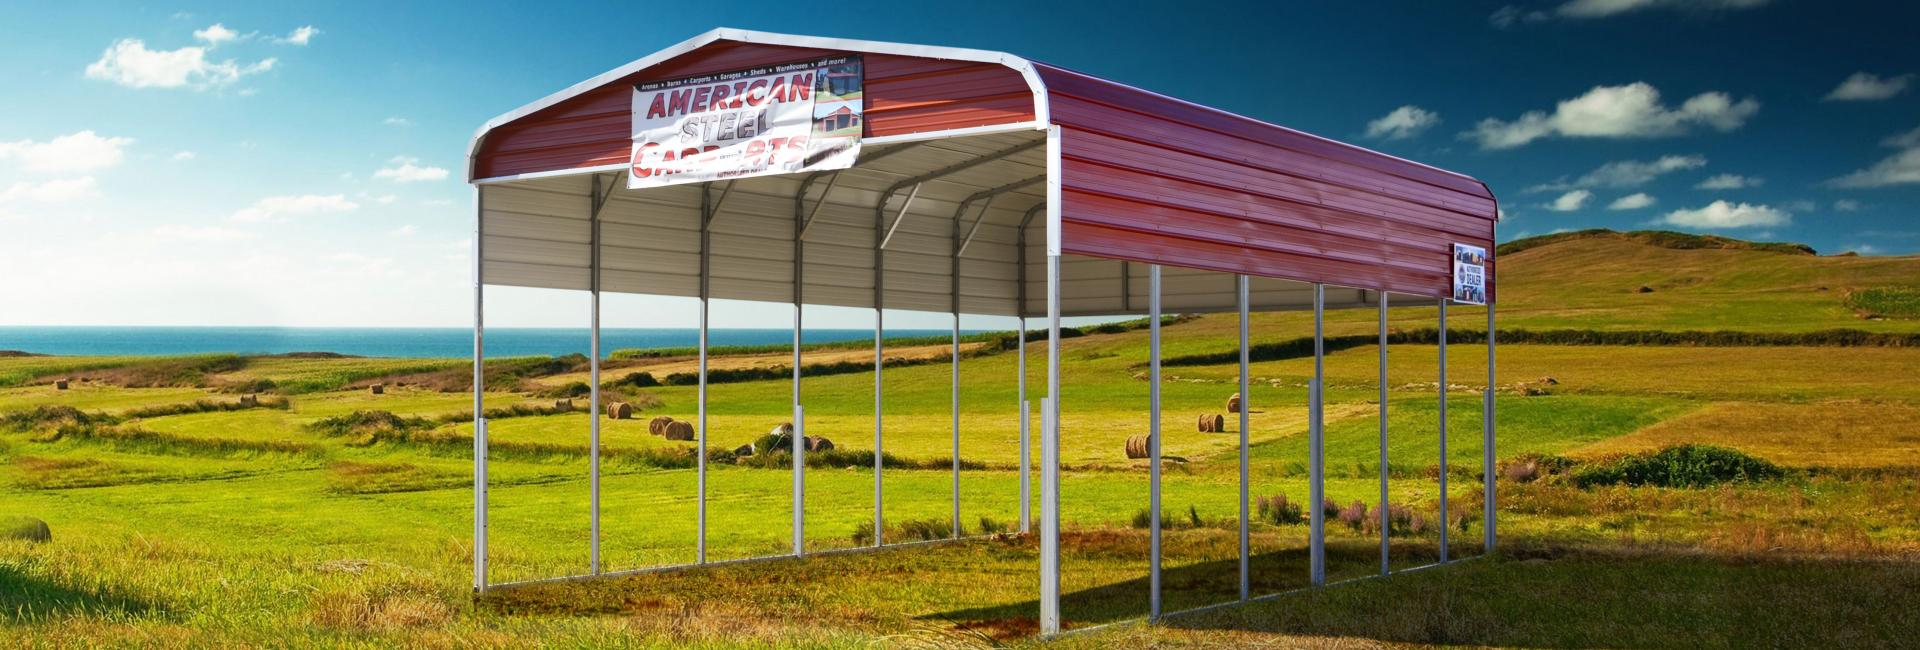 Steel carport with red roof in a scenic landscape